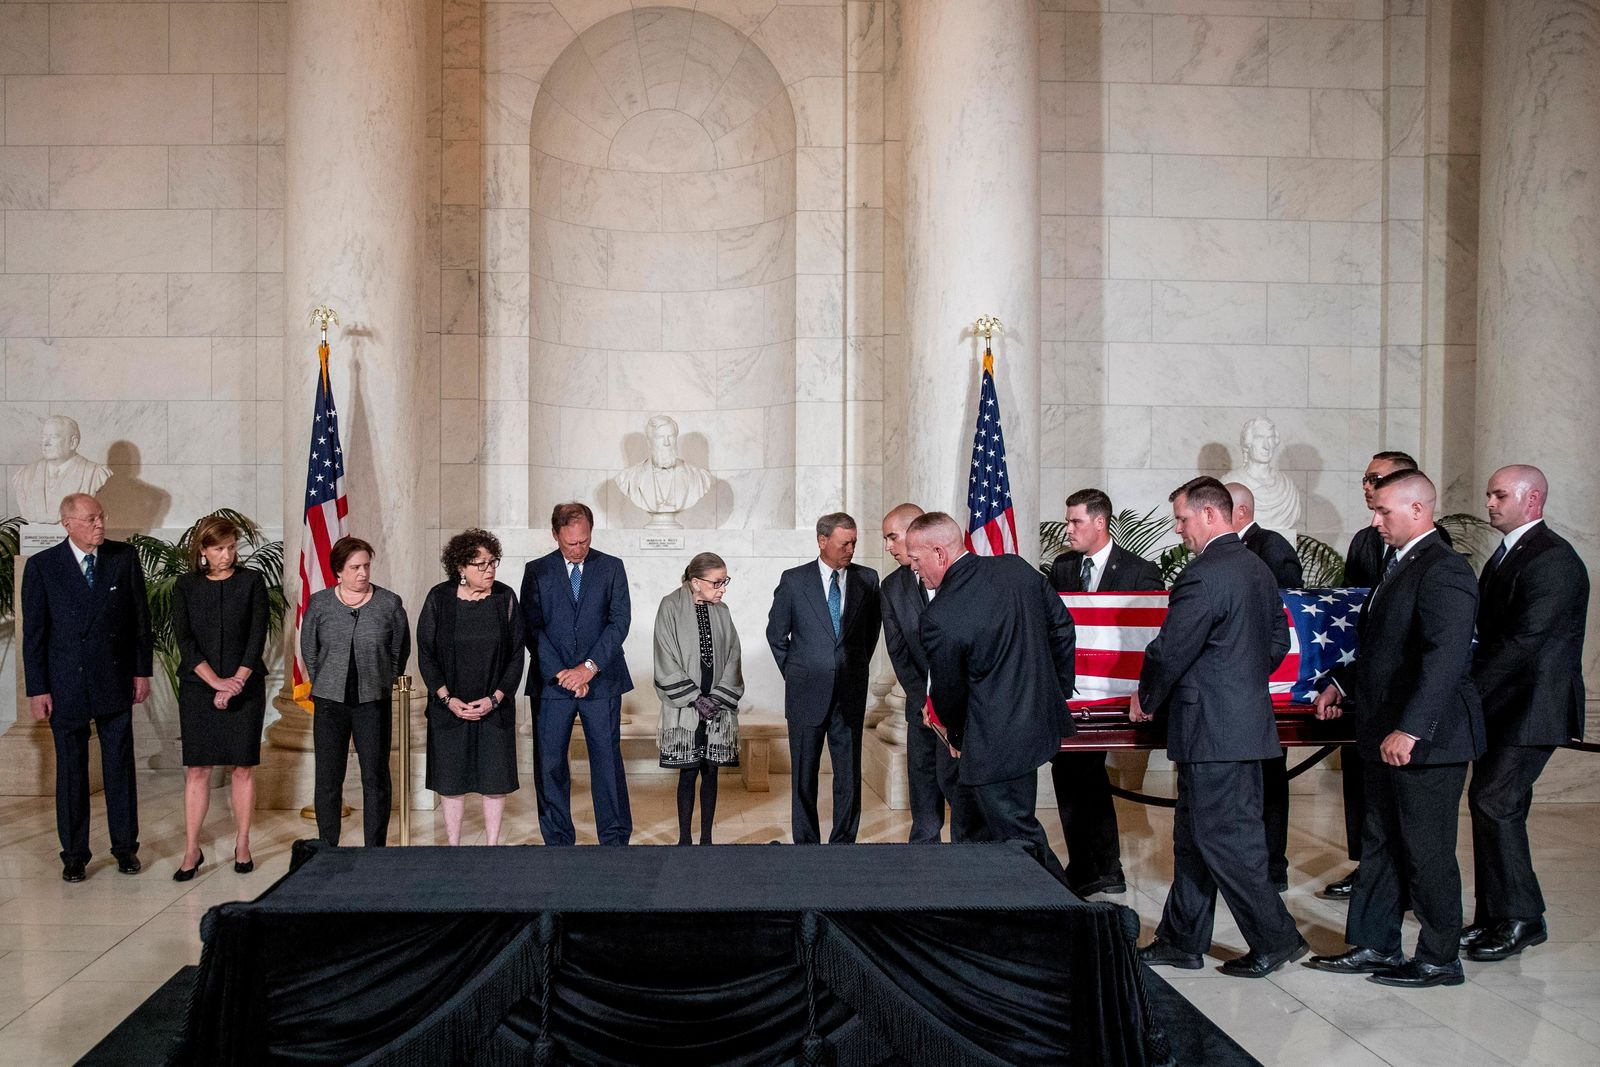 From left, retired Associate Justice Anthony Kennedy, Ashley Kavanaugh, the wife of Associate Justice Brett Kavanaugh, Associate Justice Elena Kagan, Associate Justice Sonia Sotomayor, Associate Justice Samuel Alito, Associate Justice Ruth Bader Ginsburg, and Chief Justice John Roberts watch as the casket of late Supreme Court Justice John Paul Stevens is carried into the Great Hall of the Supreme Court in Washington, Monday, July 22, 2019. (AP Photo/Andrew Harnik, pool)